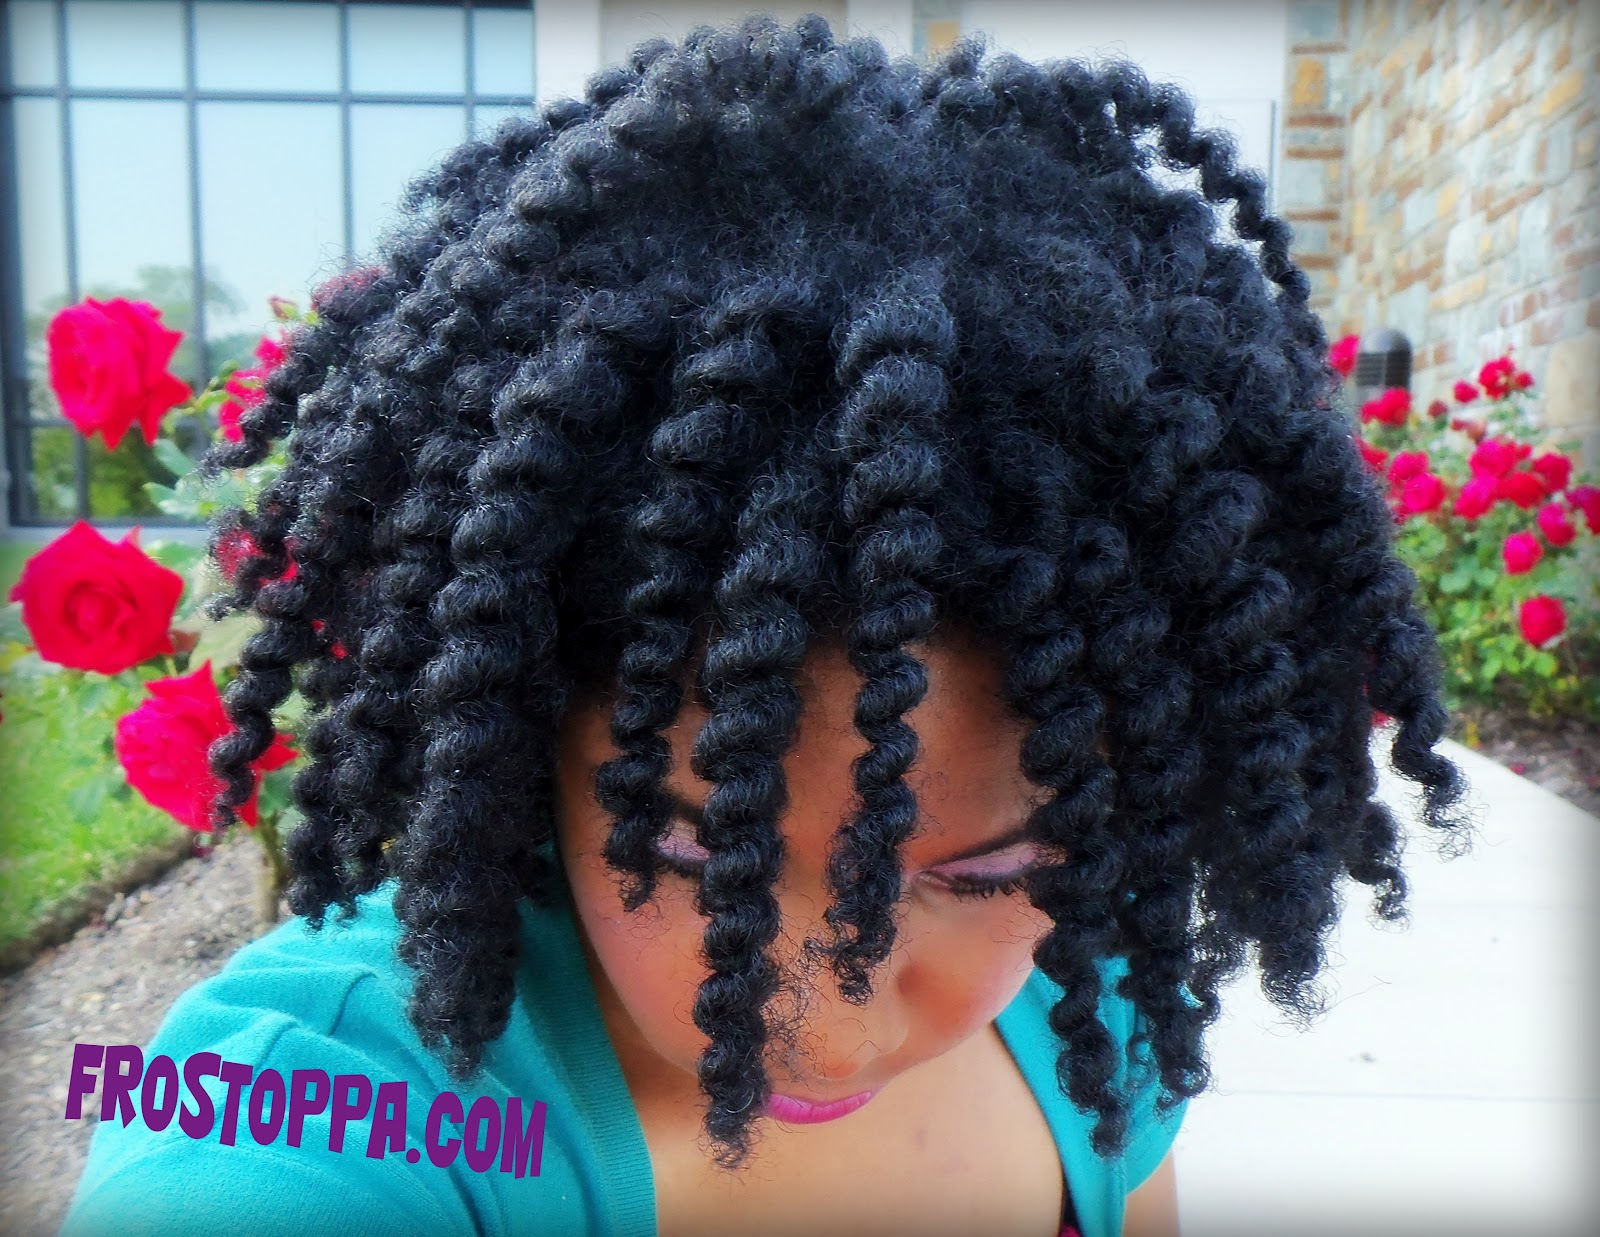 My Most Defined Twist Out On Natural Hair To Date